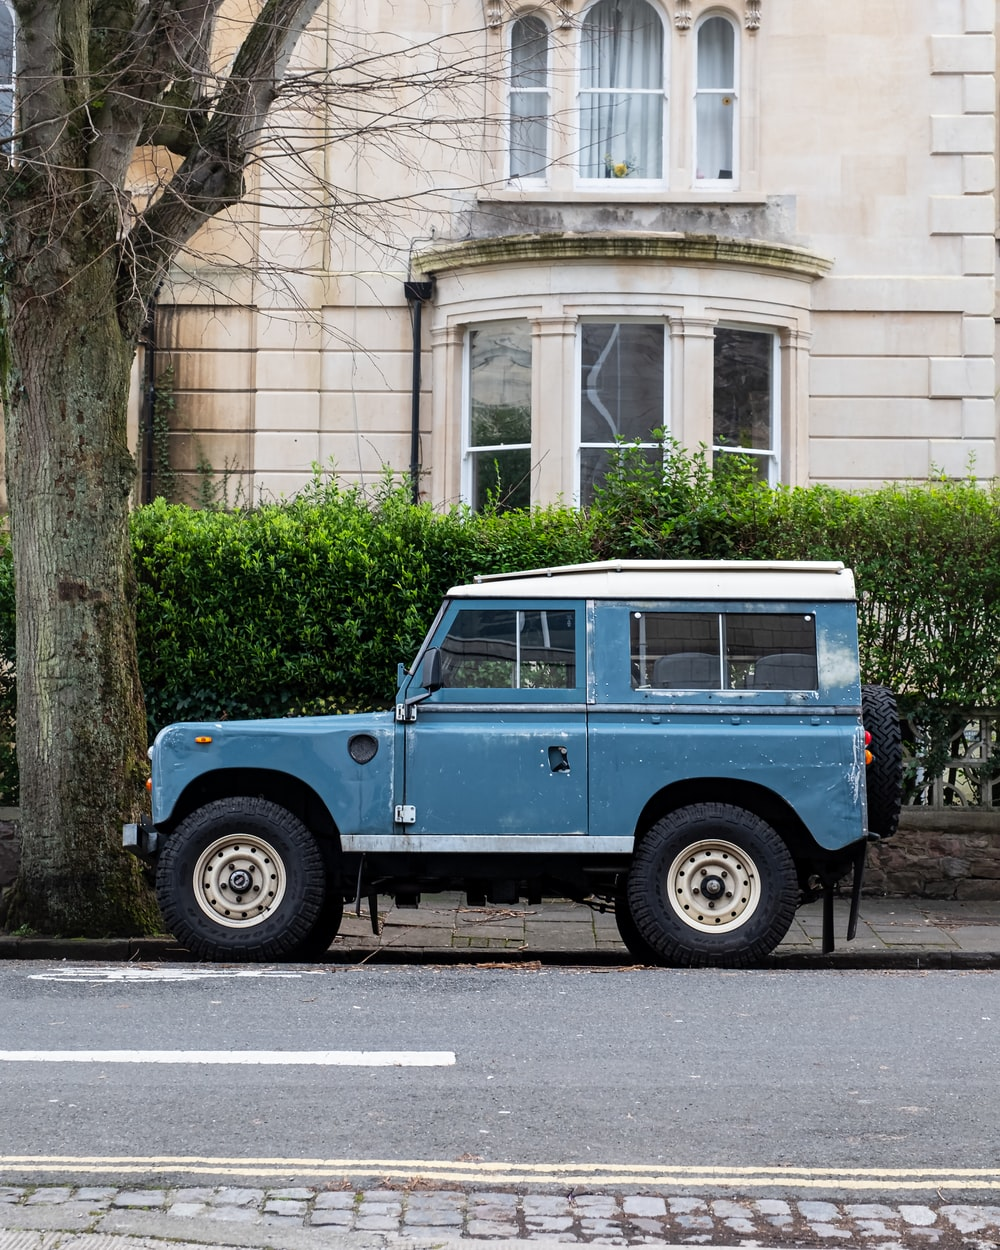 blue and white jeep wrangler parked beside brown concrete building during daytime